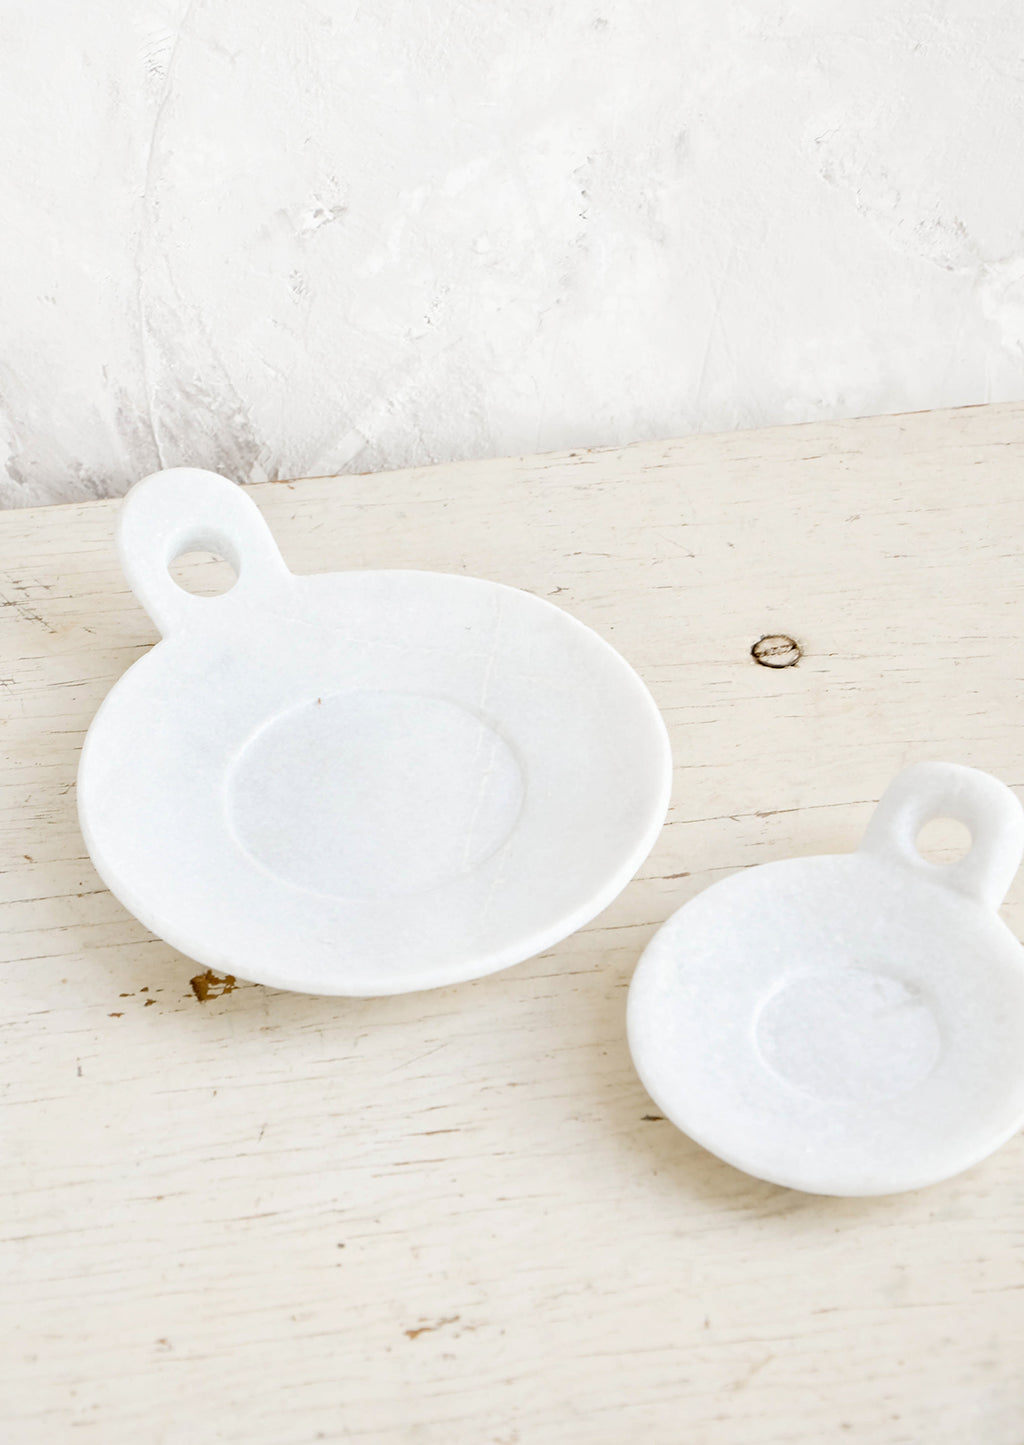 1: Round marble dishes with circular cutout side handle and circular inset at center